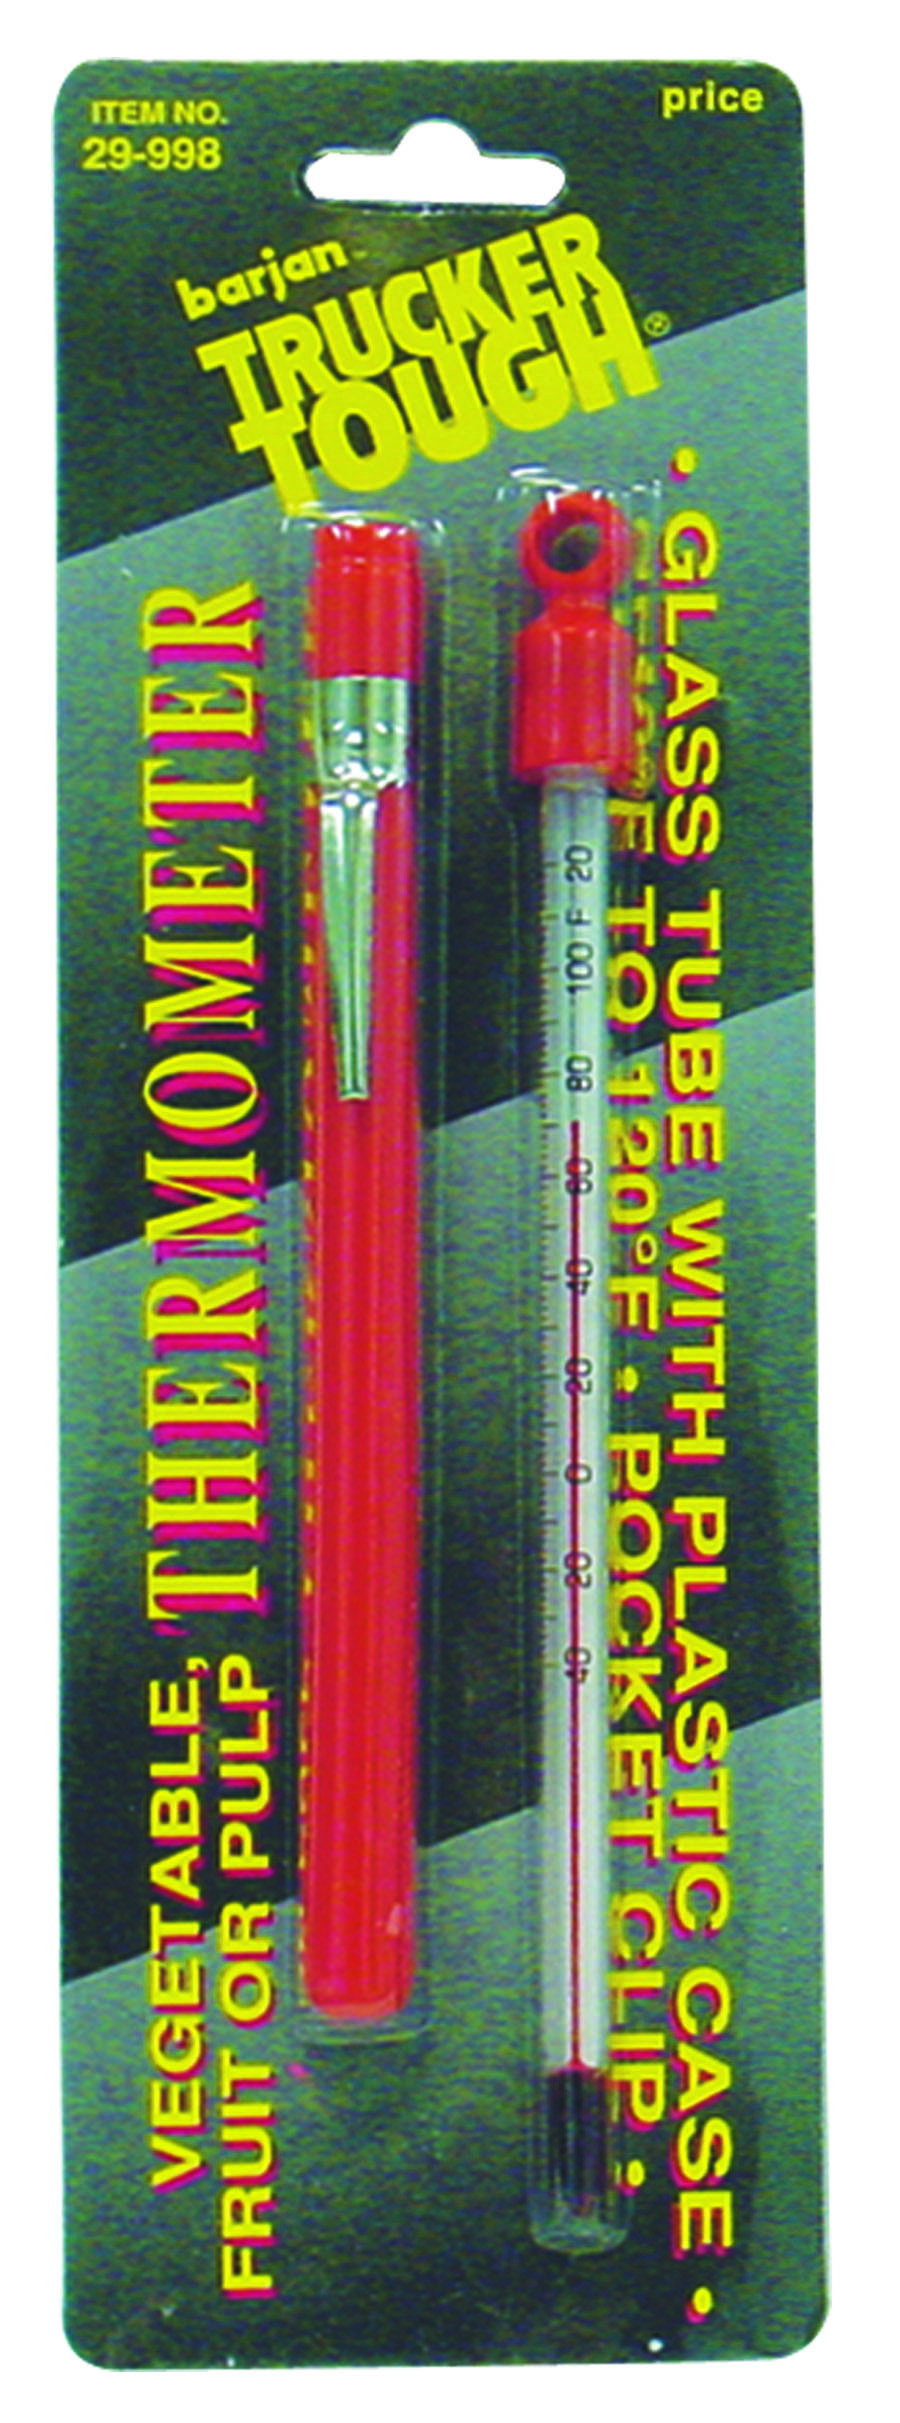 "BARJAN - 6"" GLASS TUBE VEGETABLE & FRUIT THERMOMETER WITH HANDY POCKET CLIP. MEASURES -40 DEGREES TO +120F"